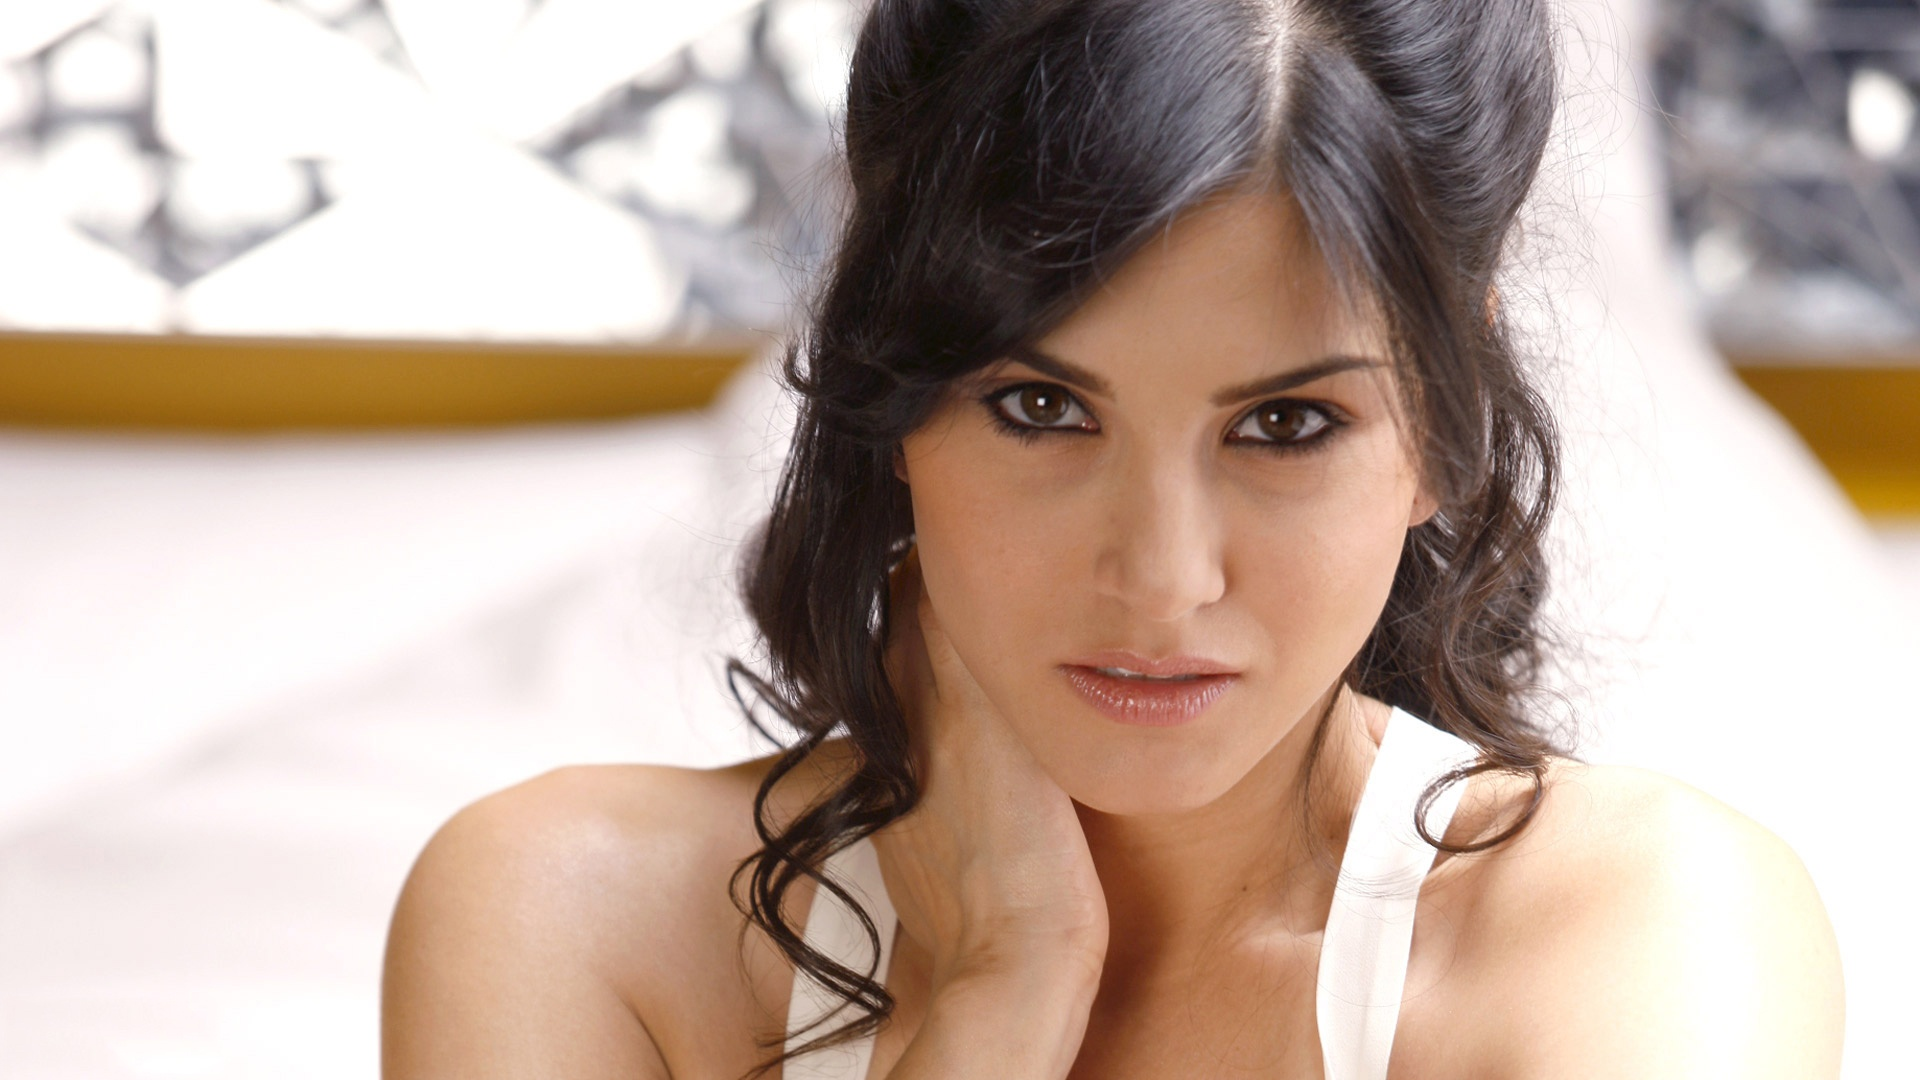 10 hd sunny leone wallpapers - stunning hd wallpapers and background